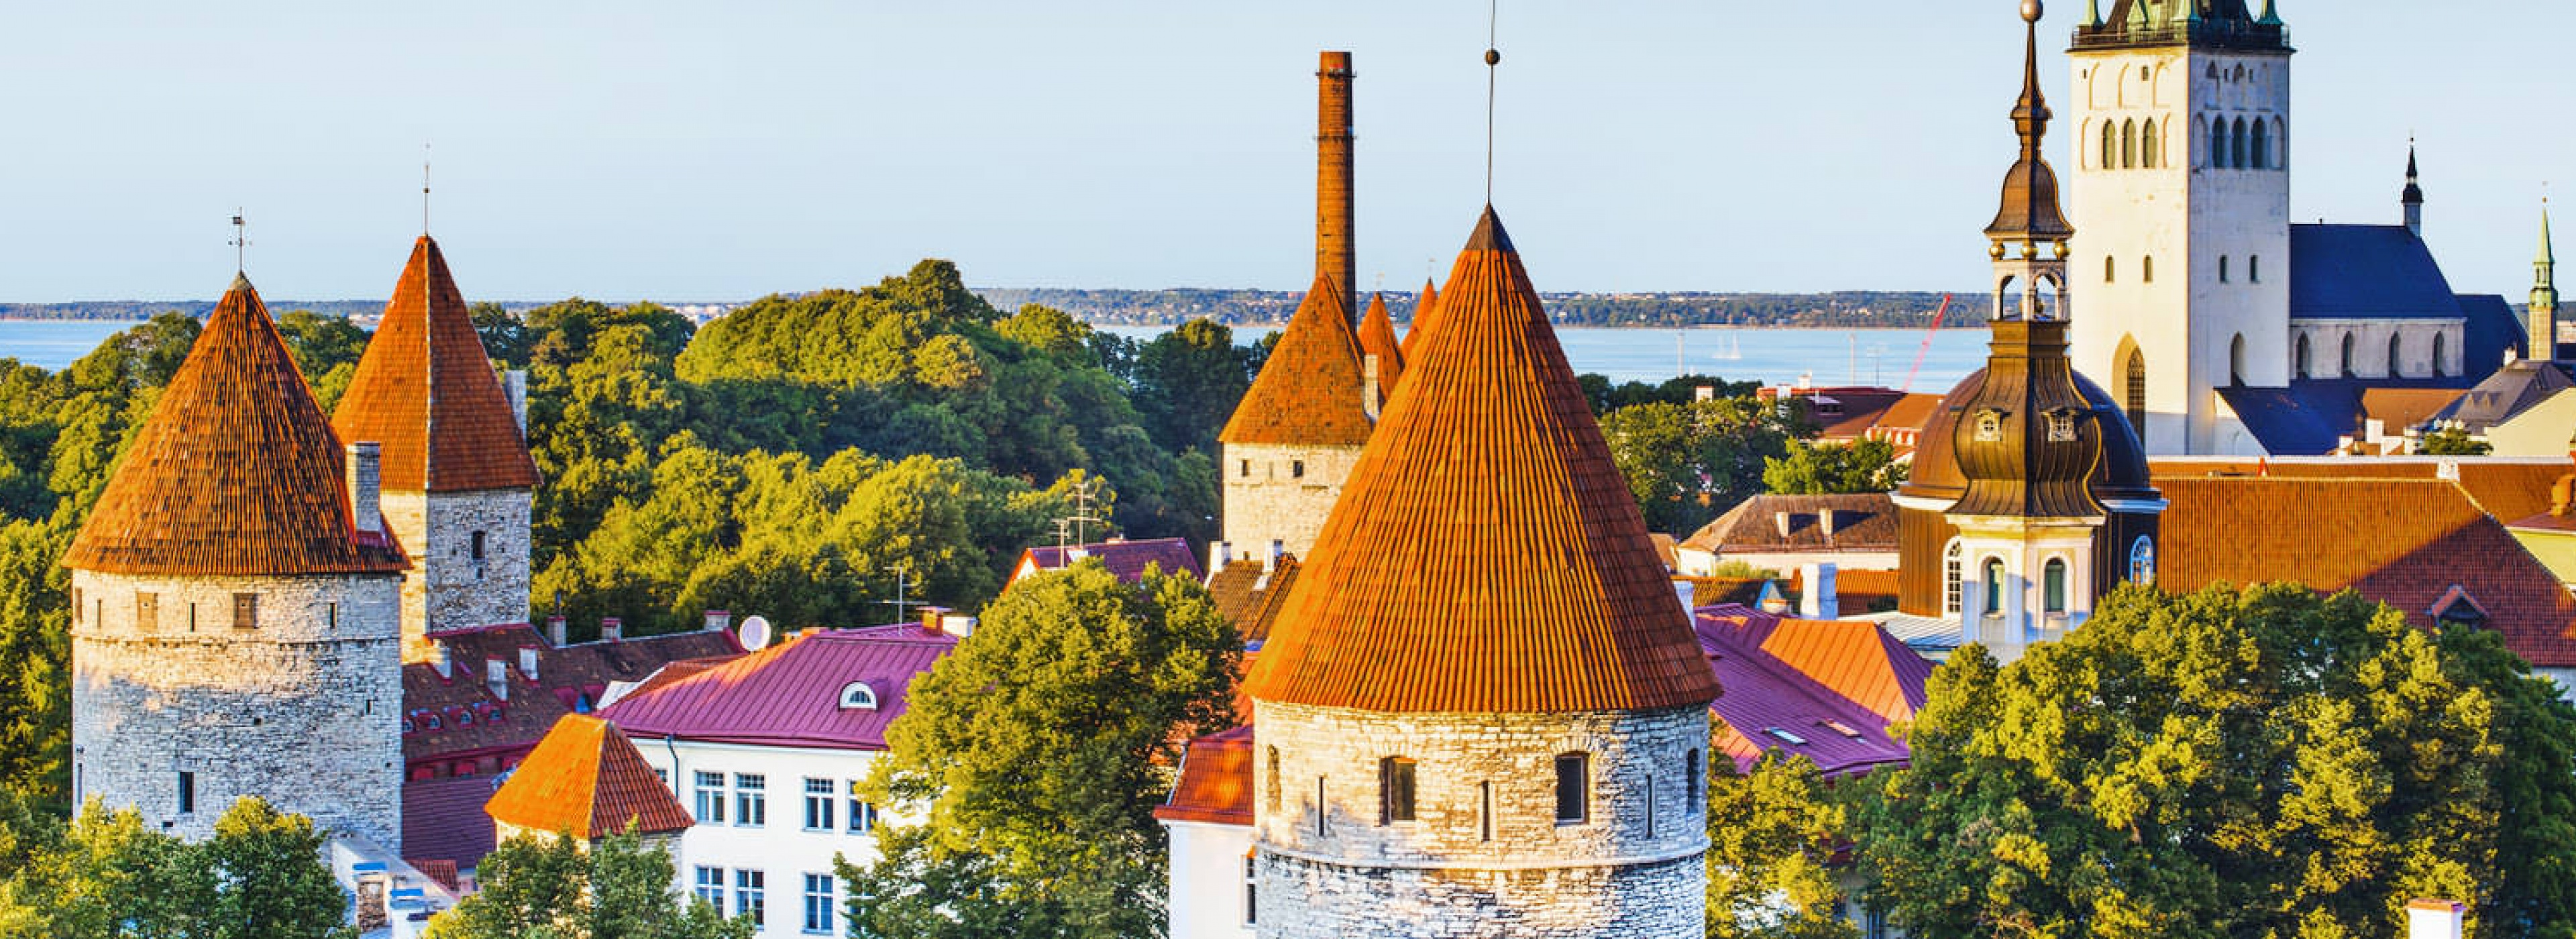 Enjoy a fascinating journey through time in the perfeсtly-preserved Old Towns of the Baltic Capitals